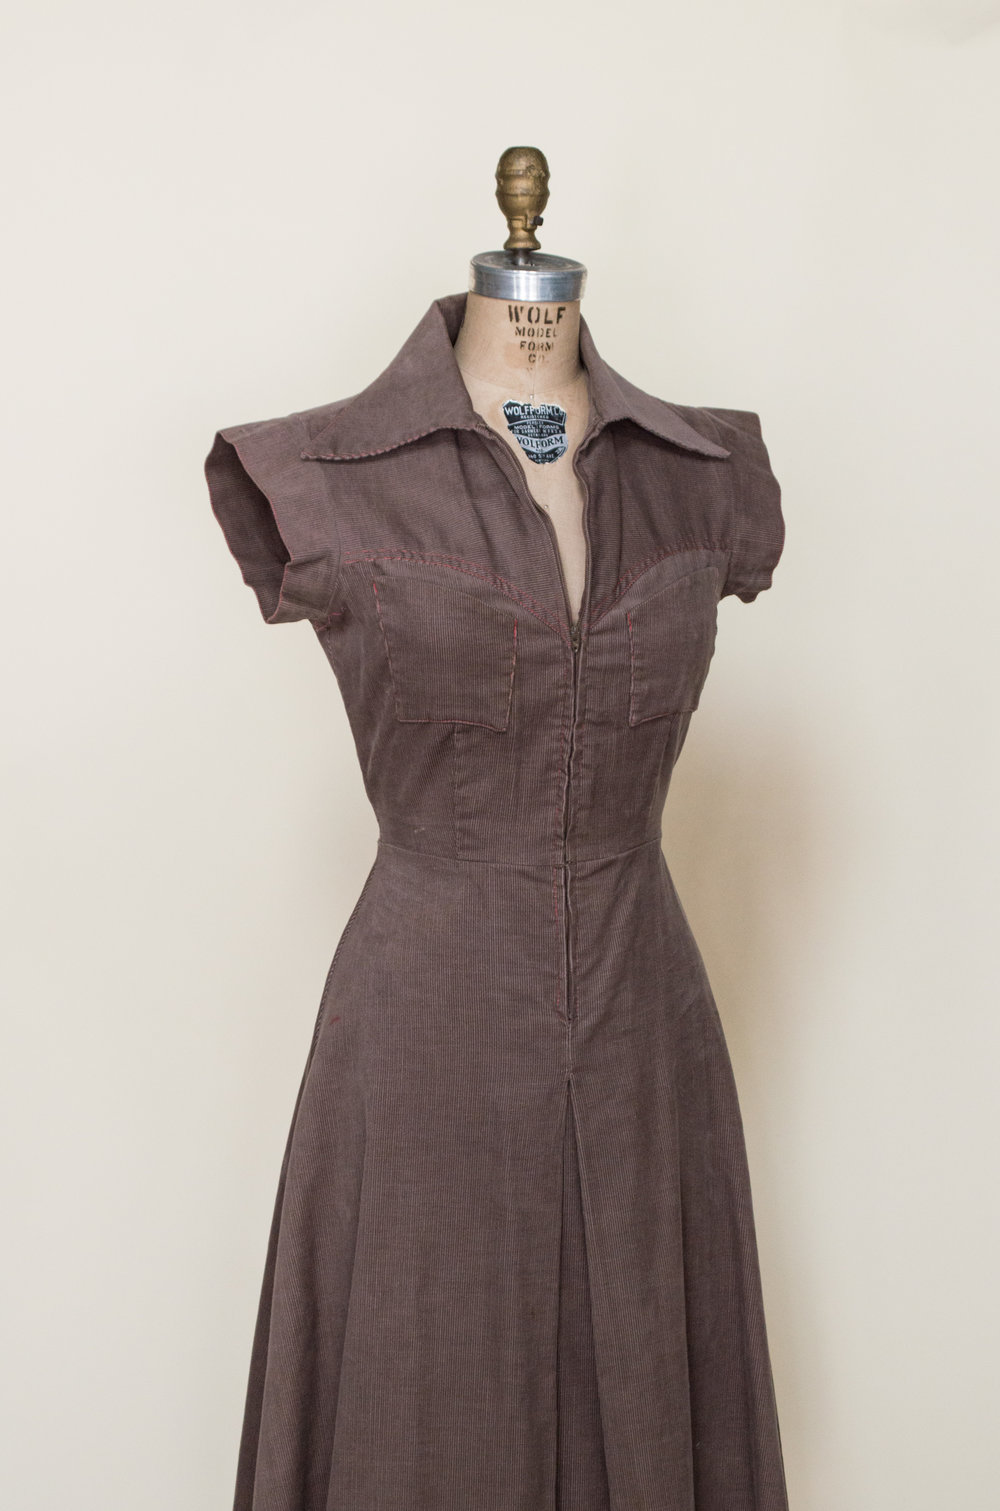 1970s corduroy dress from Dalena Vintage